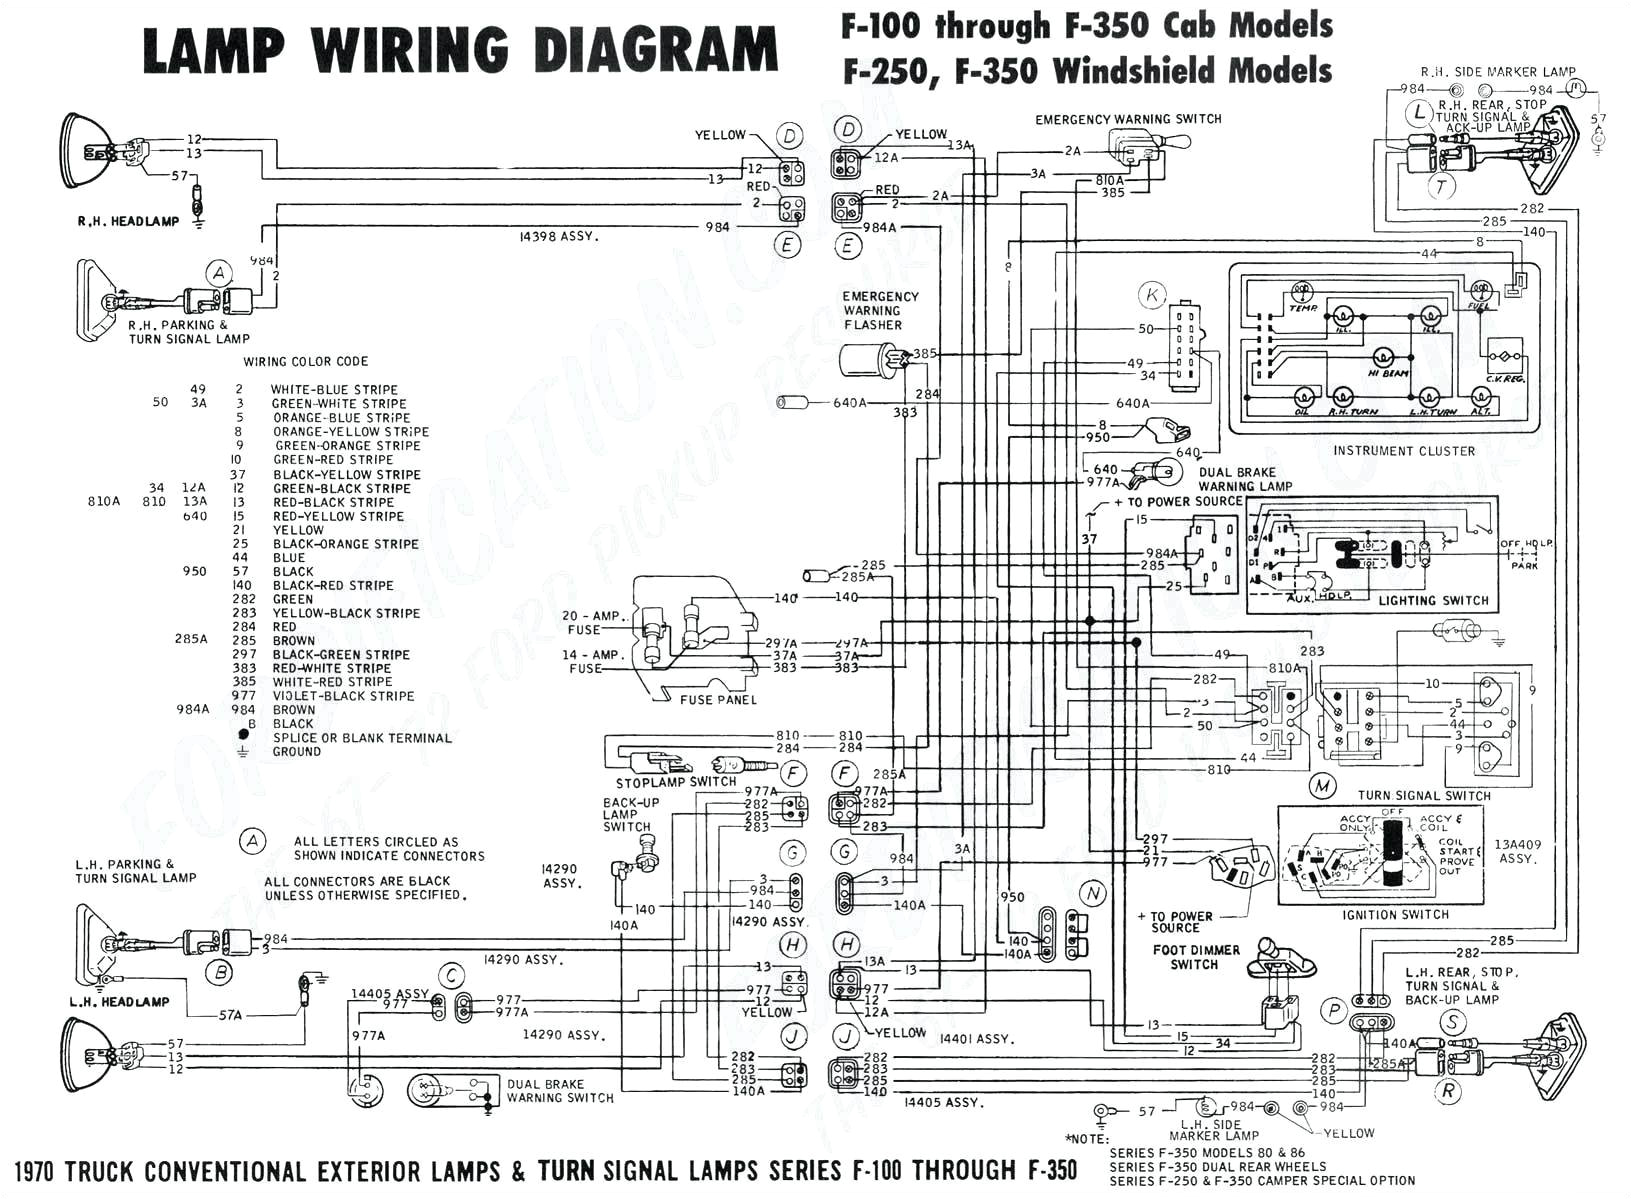 350z transmission wiring diagram free picture wiring diagram used 240sx transmission wiring harness diagram